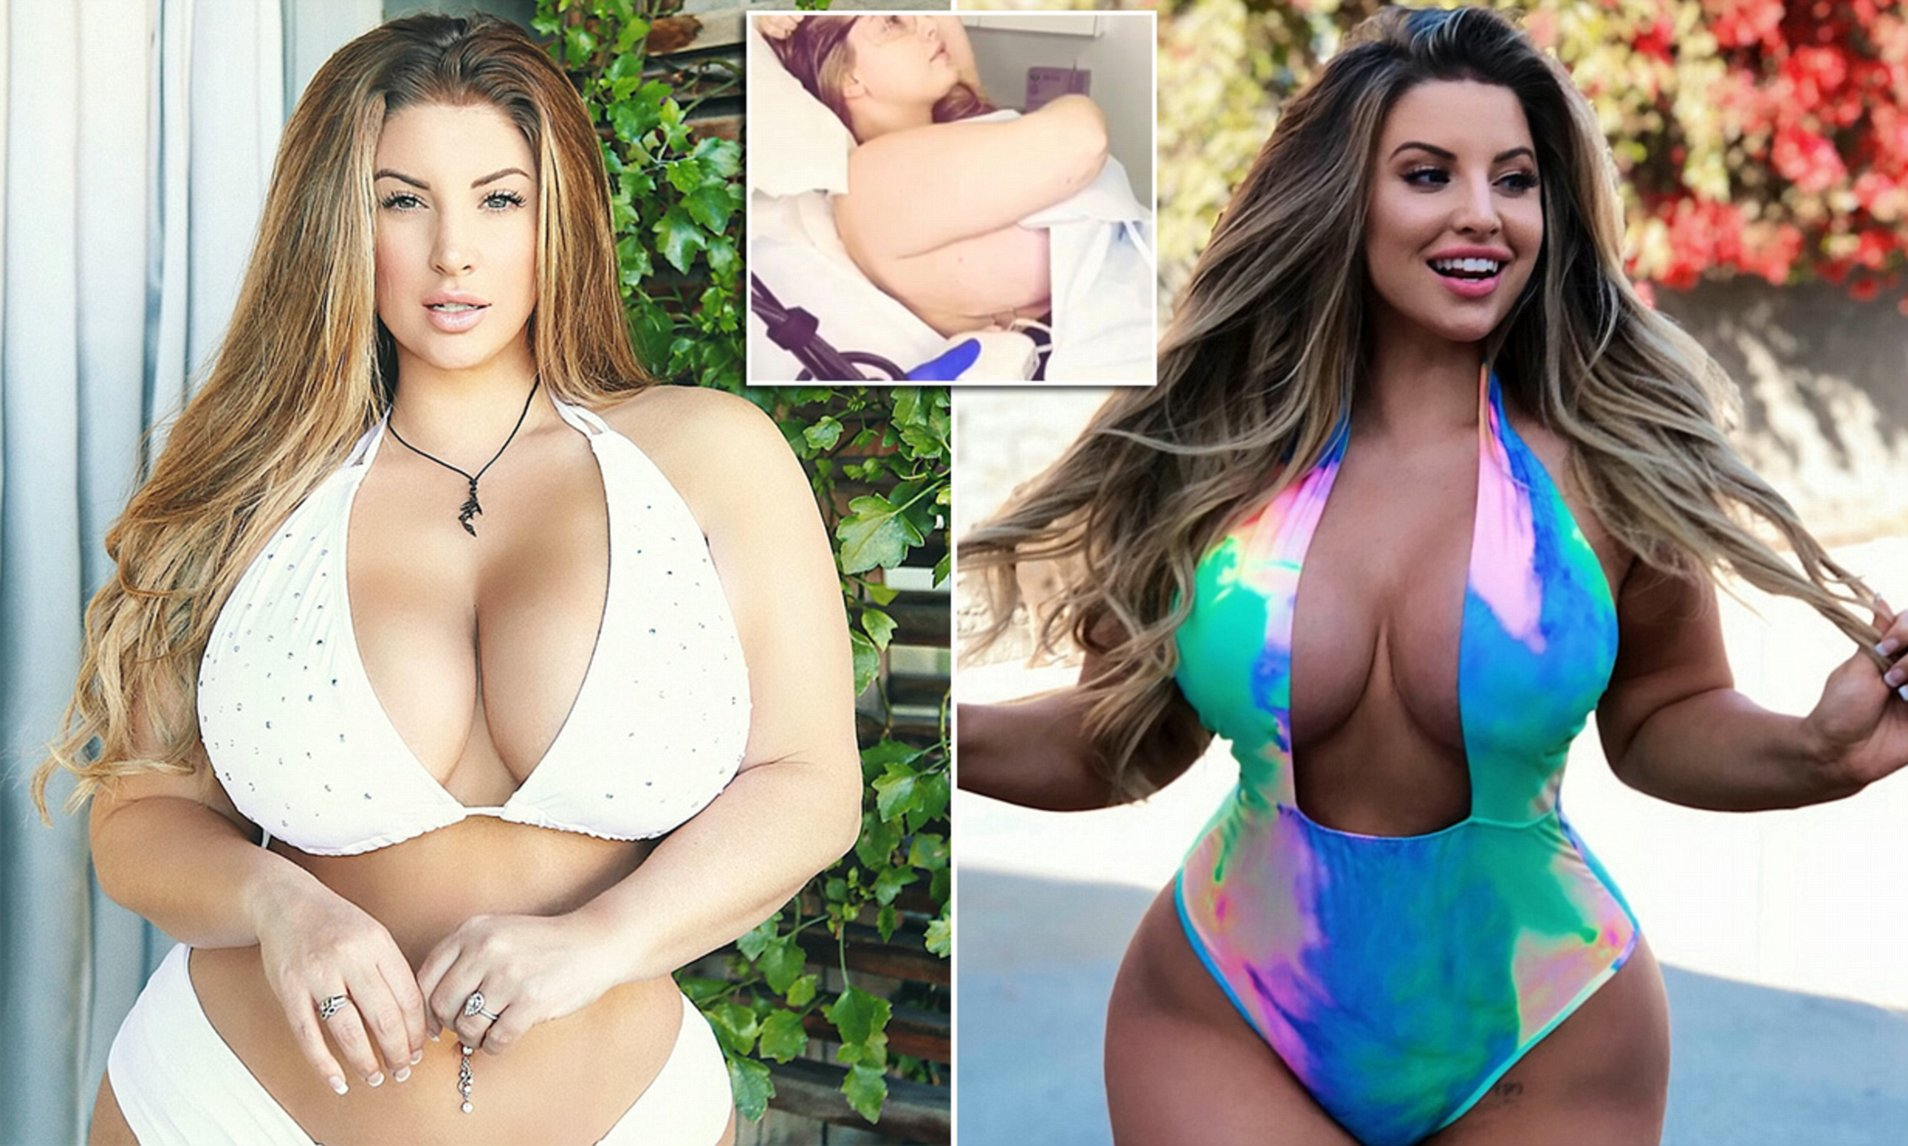 Ashley alexiss xxx. brazzier. com